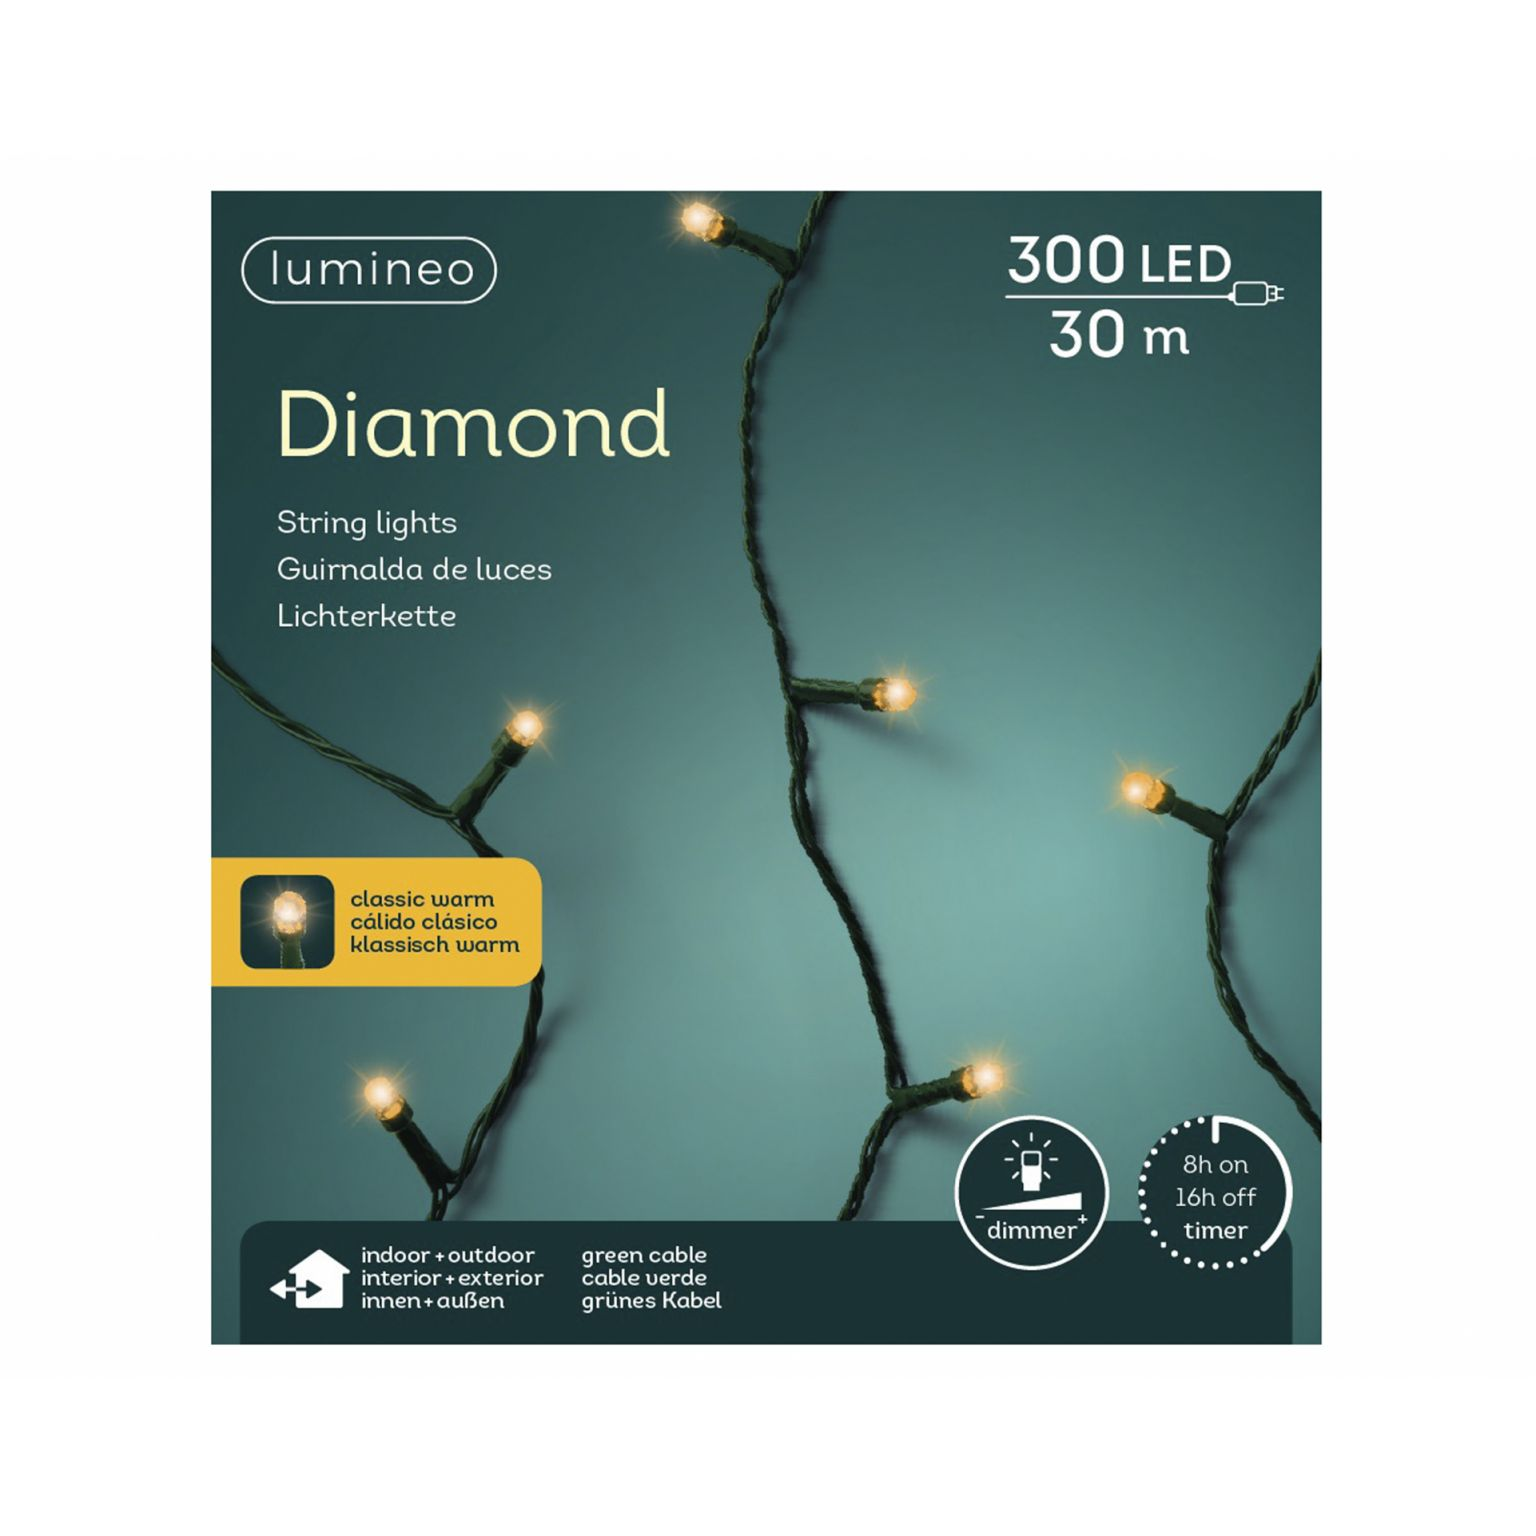 LED diamondverlichting lumineo 300 lamps 'klassiek warm